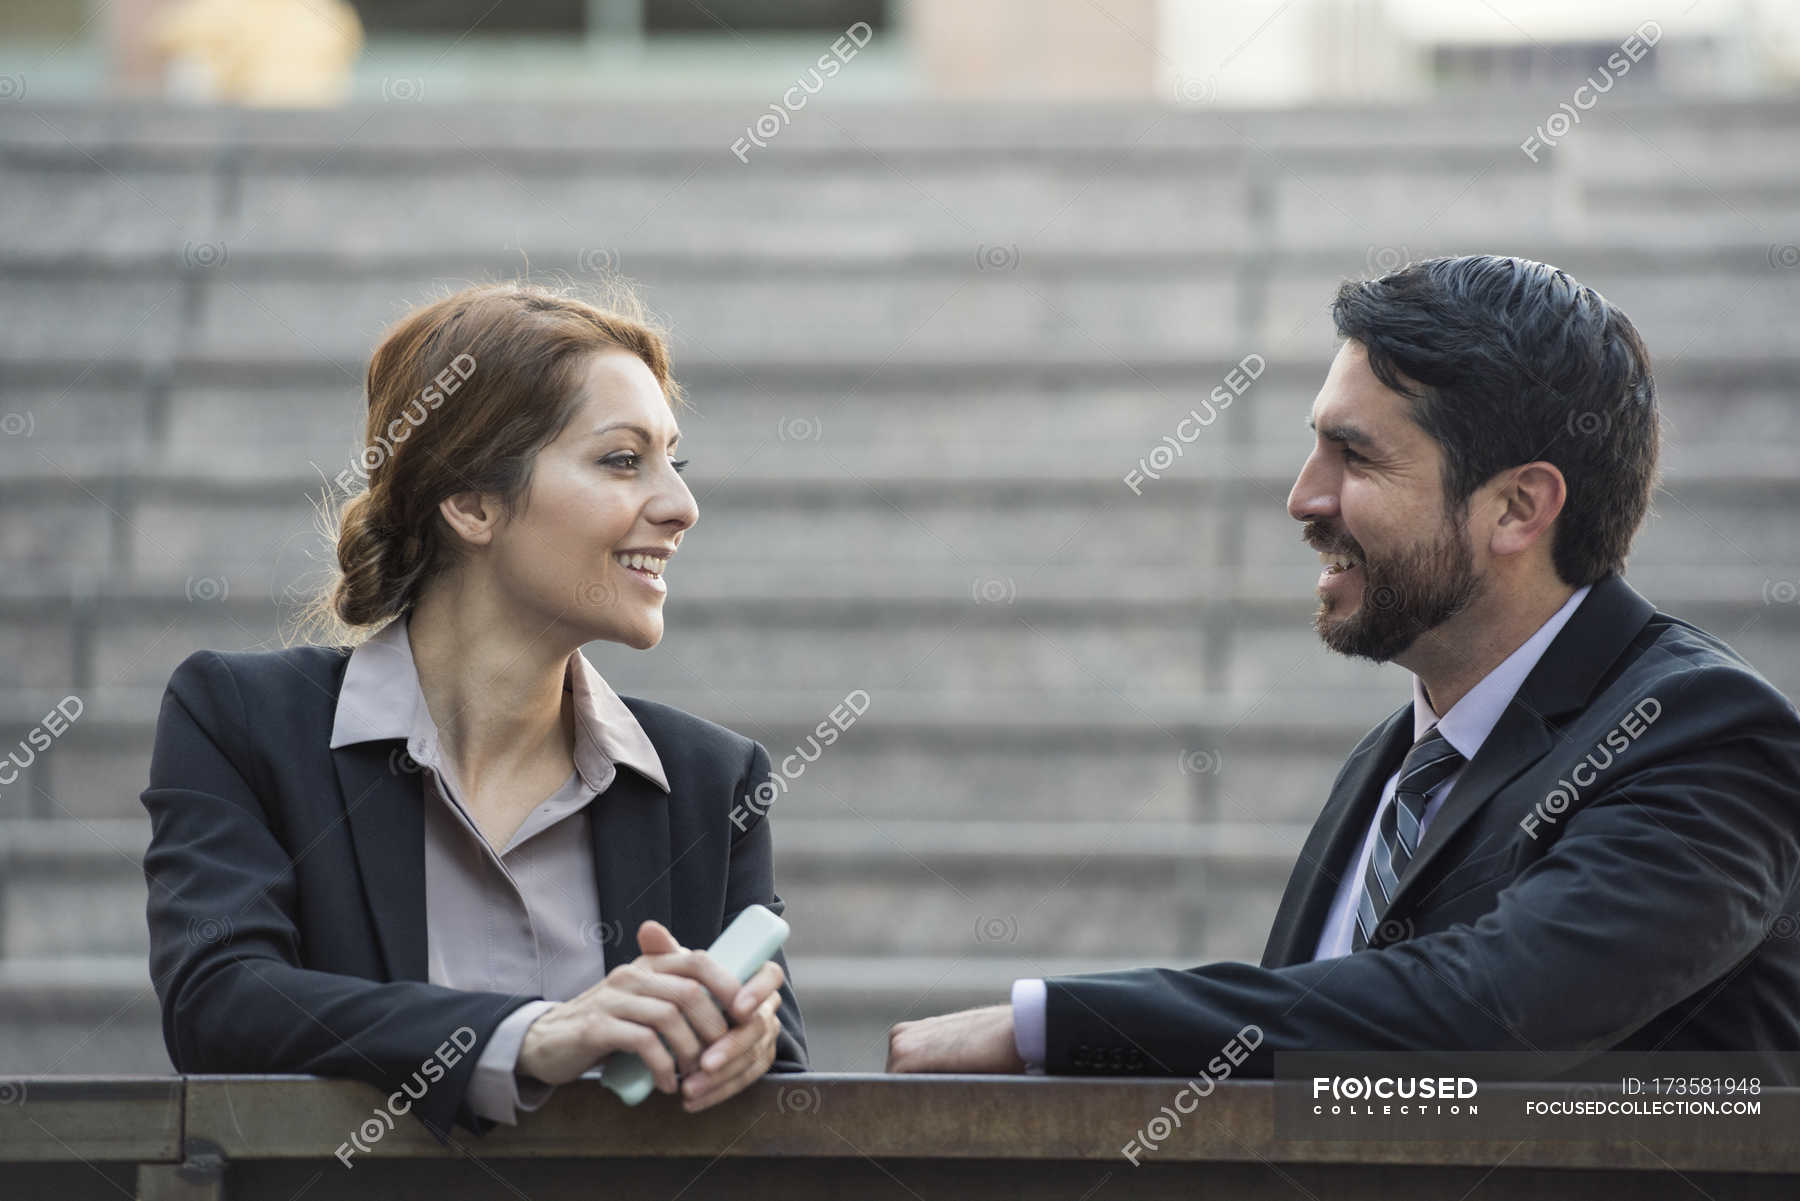 focused_173581948-Smiling-businesswoman-businessman-talking-outdoors.jpg